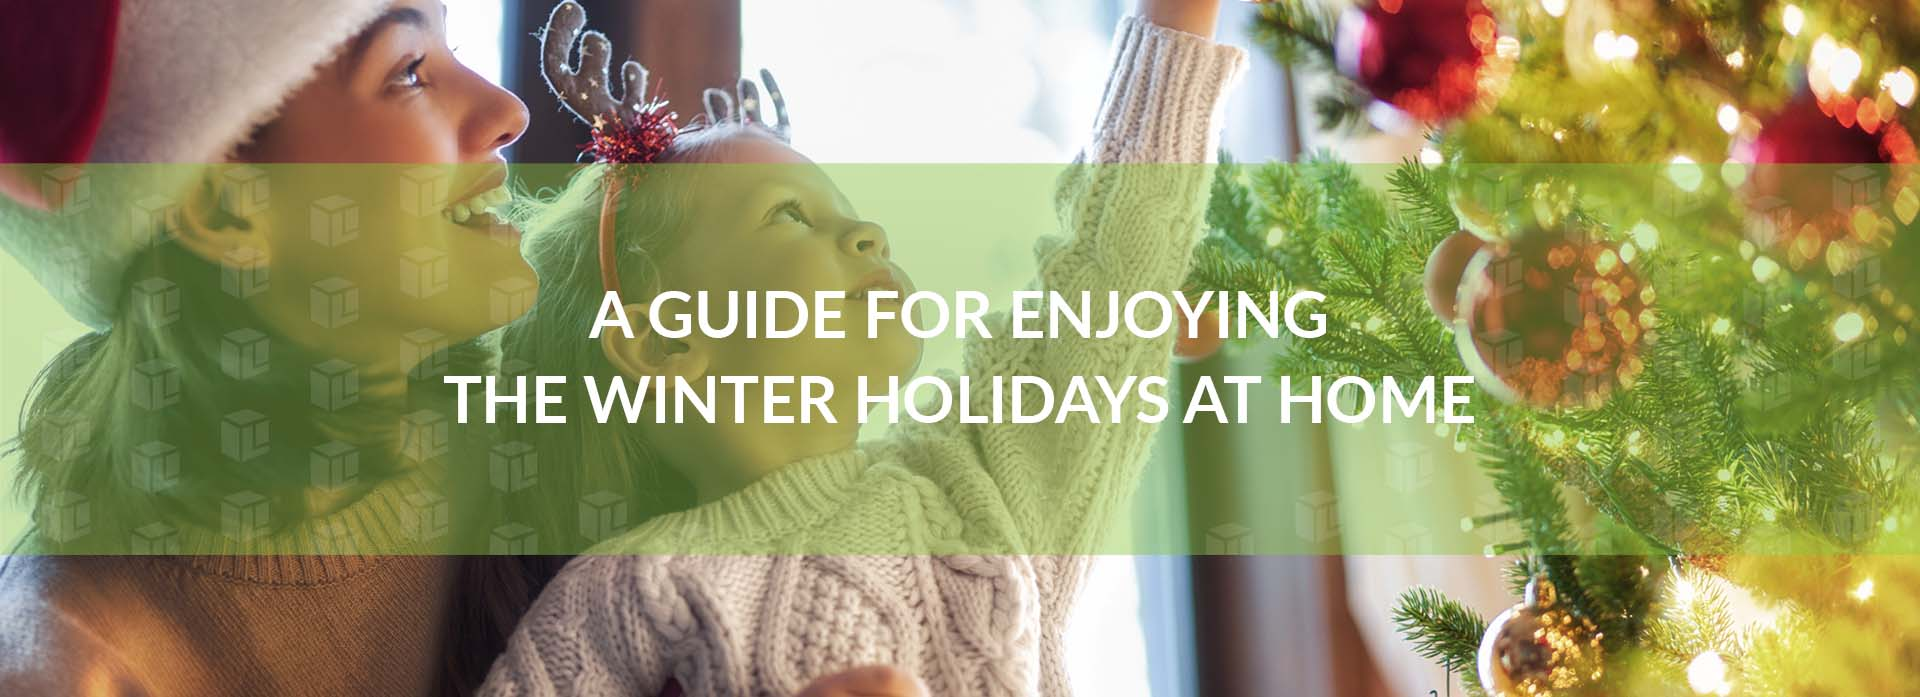 A Guide For Enjoying The Winter Holidays At Home